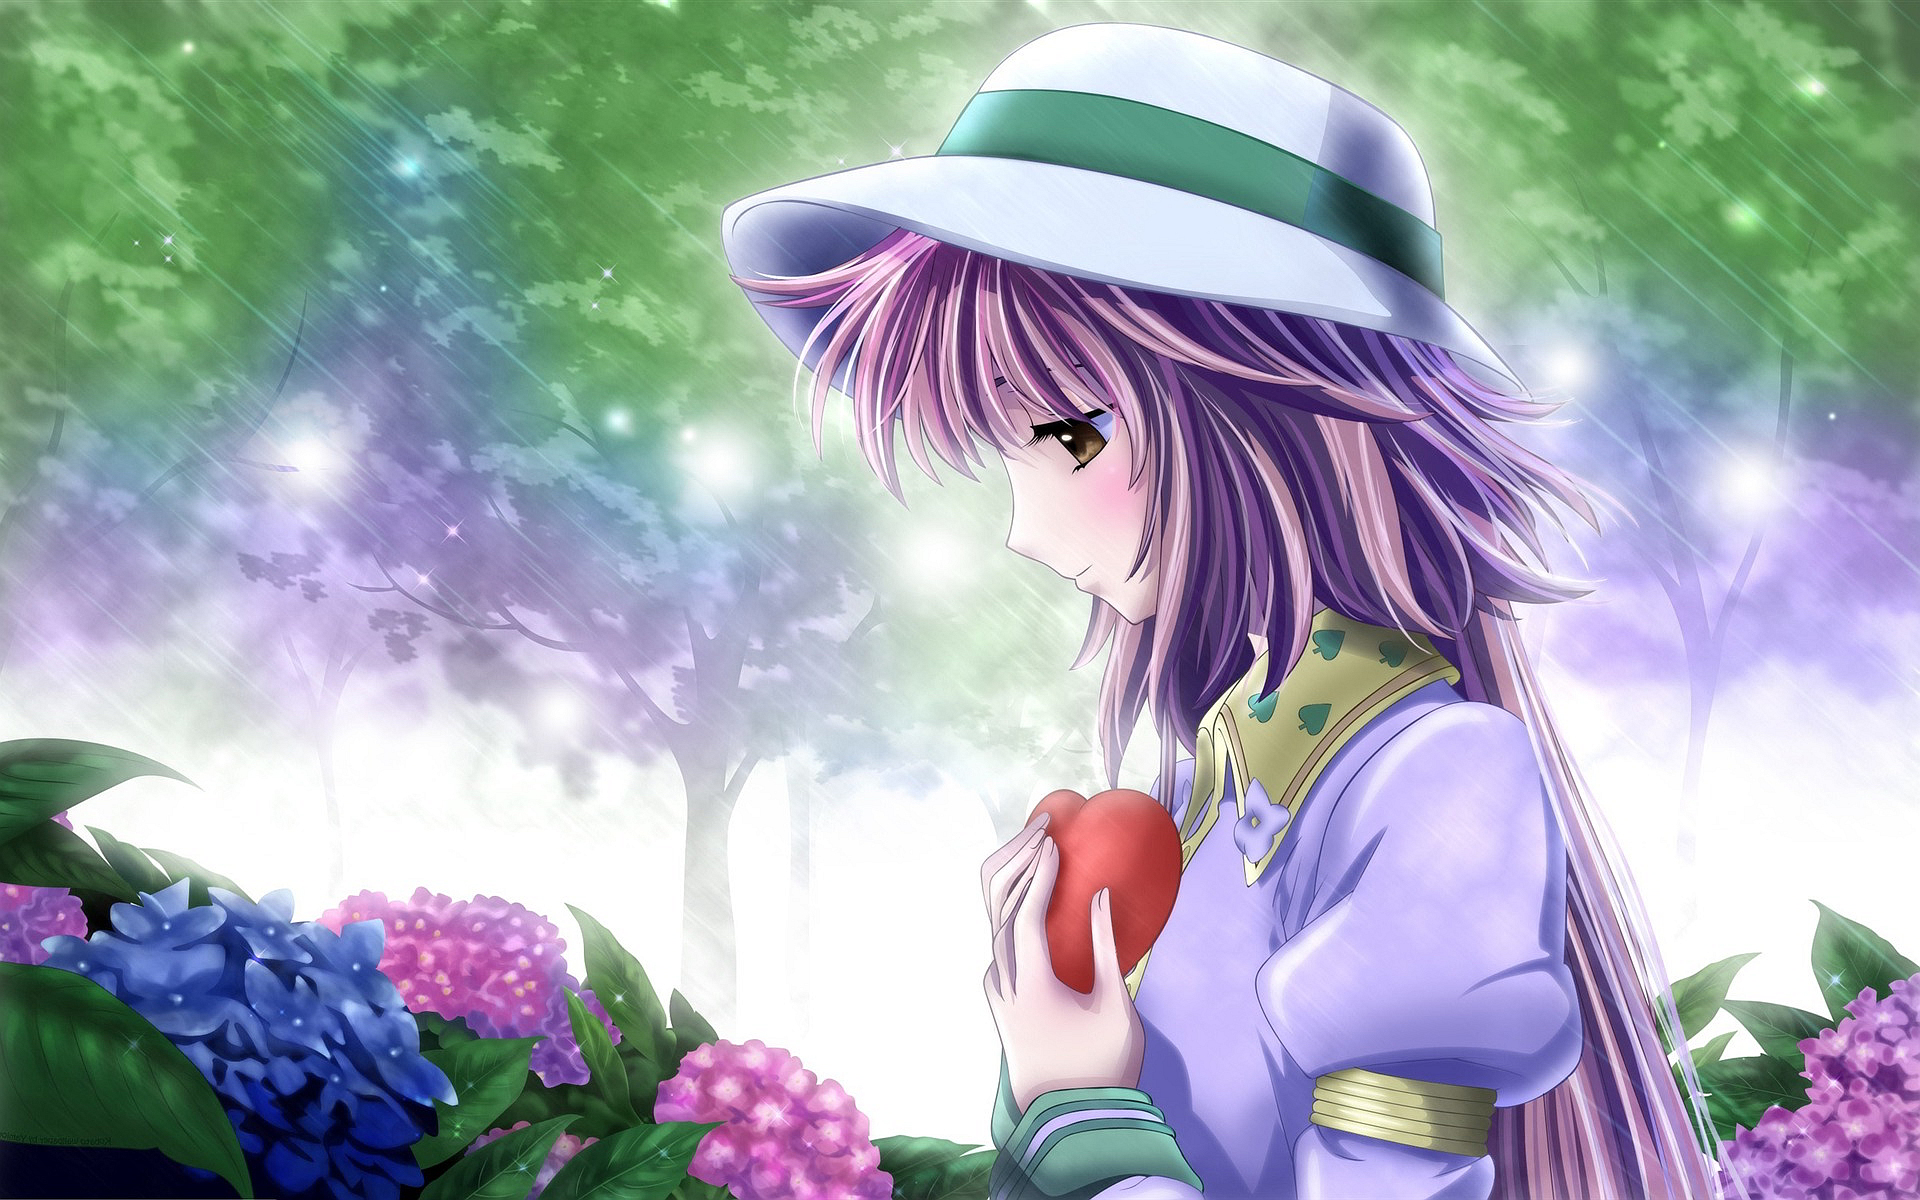 Anime Girl in Love wallpaper 1920x1200 #27895